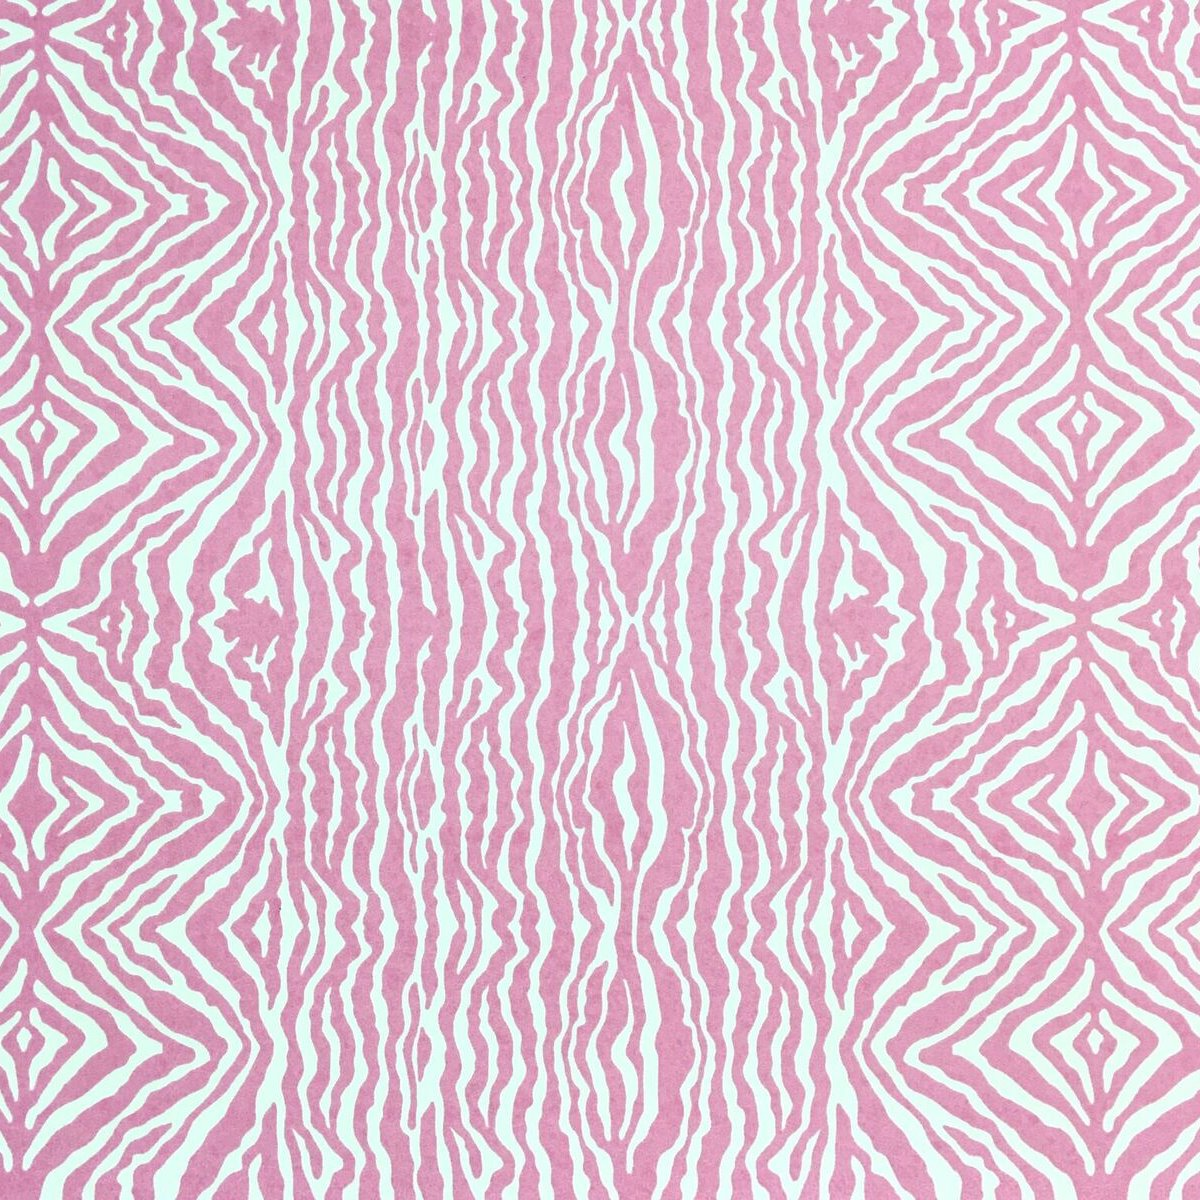 Grevys zebra stripe wallpaper pink yarrow